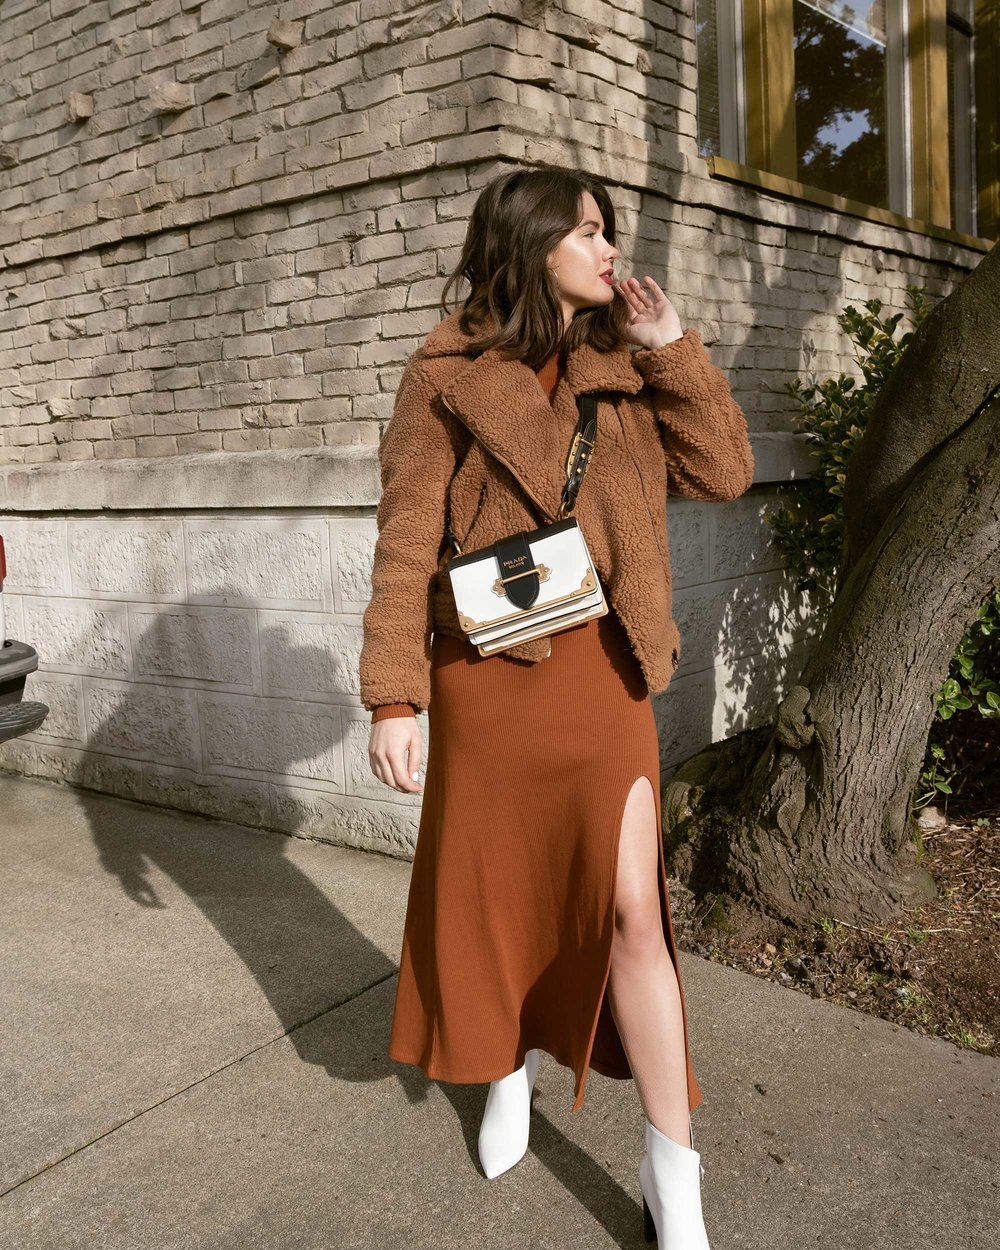 Sarah Butler of Sarah Styles Seattle wears ASTR the Label Faux Shearling Moto Jacket and Prada Saffiano Leather Cahier Bag for a causal winter outfit | @sarahchristine, Seattle Blogger20.jpg